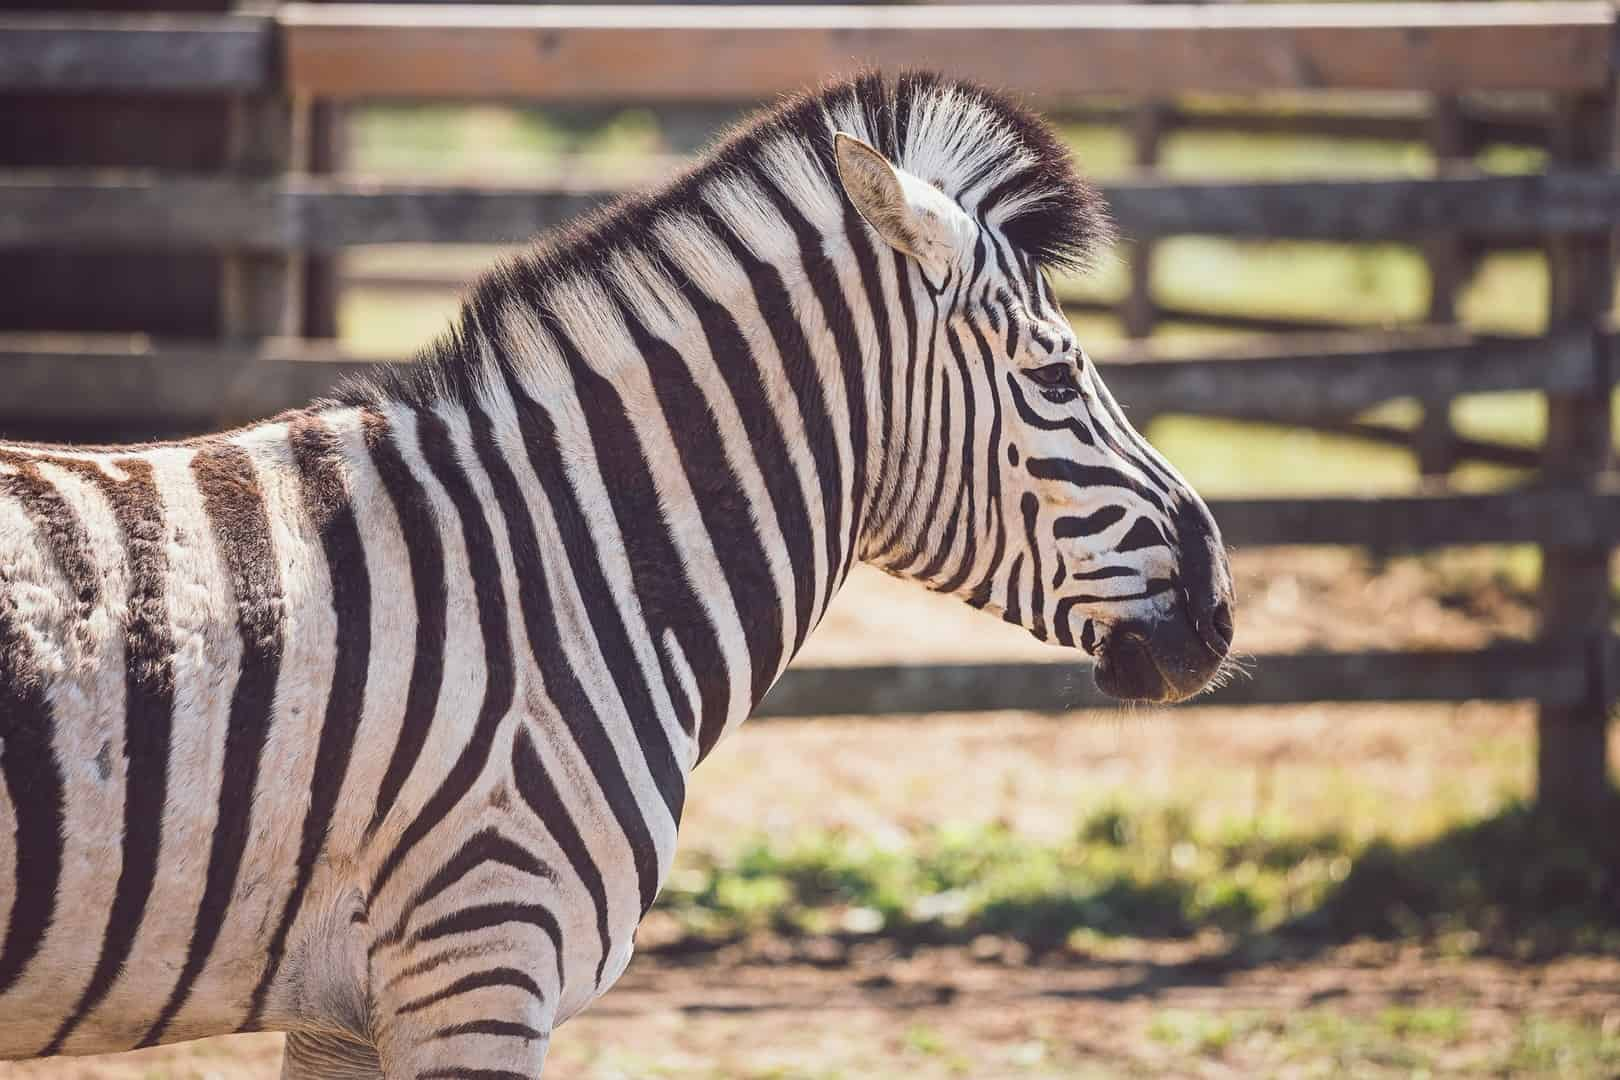 Zebra in the enclosure in Greenview Zoo